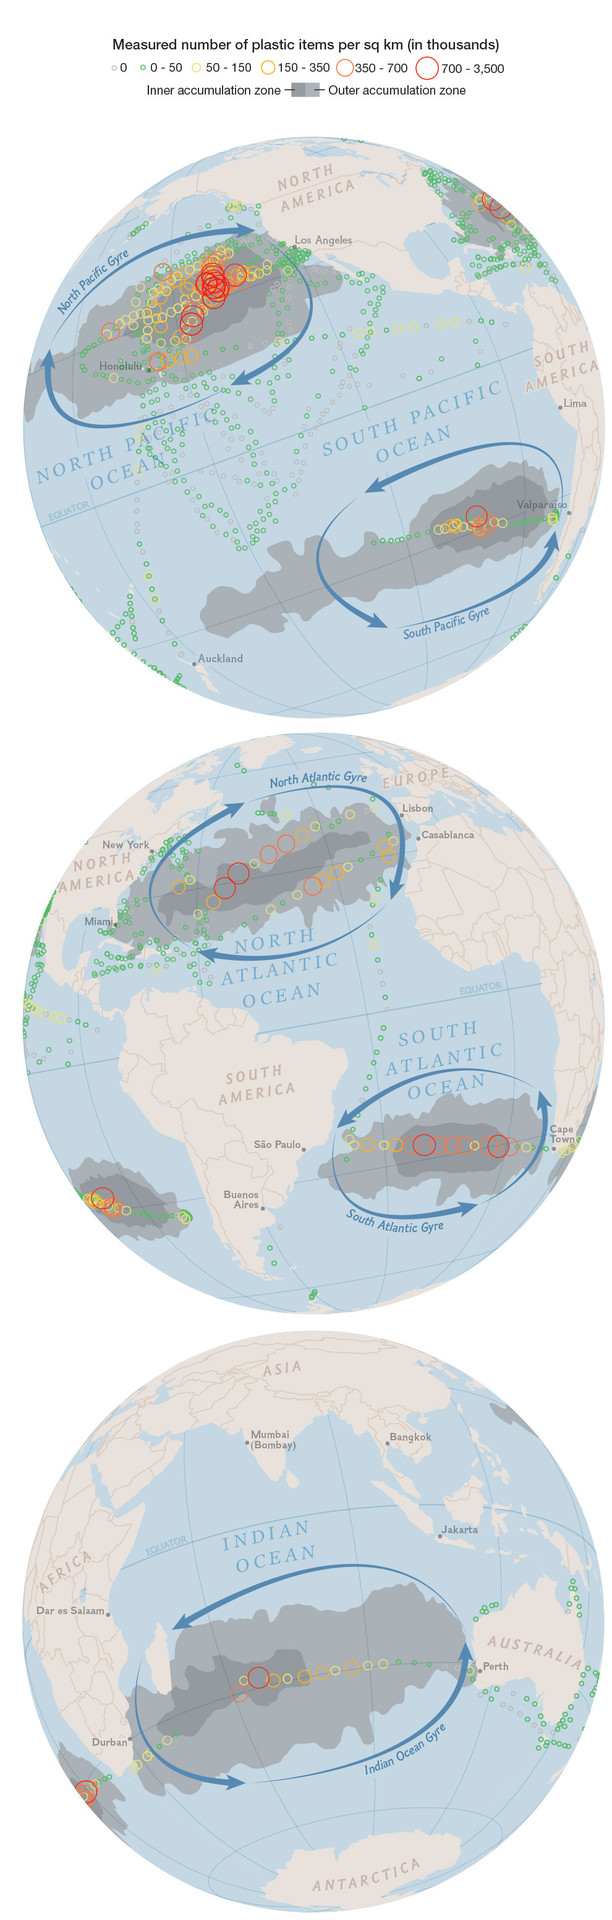 Mapping The Garbage Patches Of The Oceans Measured Number Of - Number of oceans